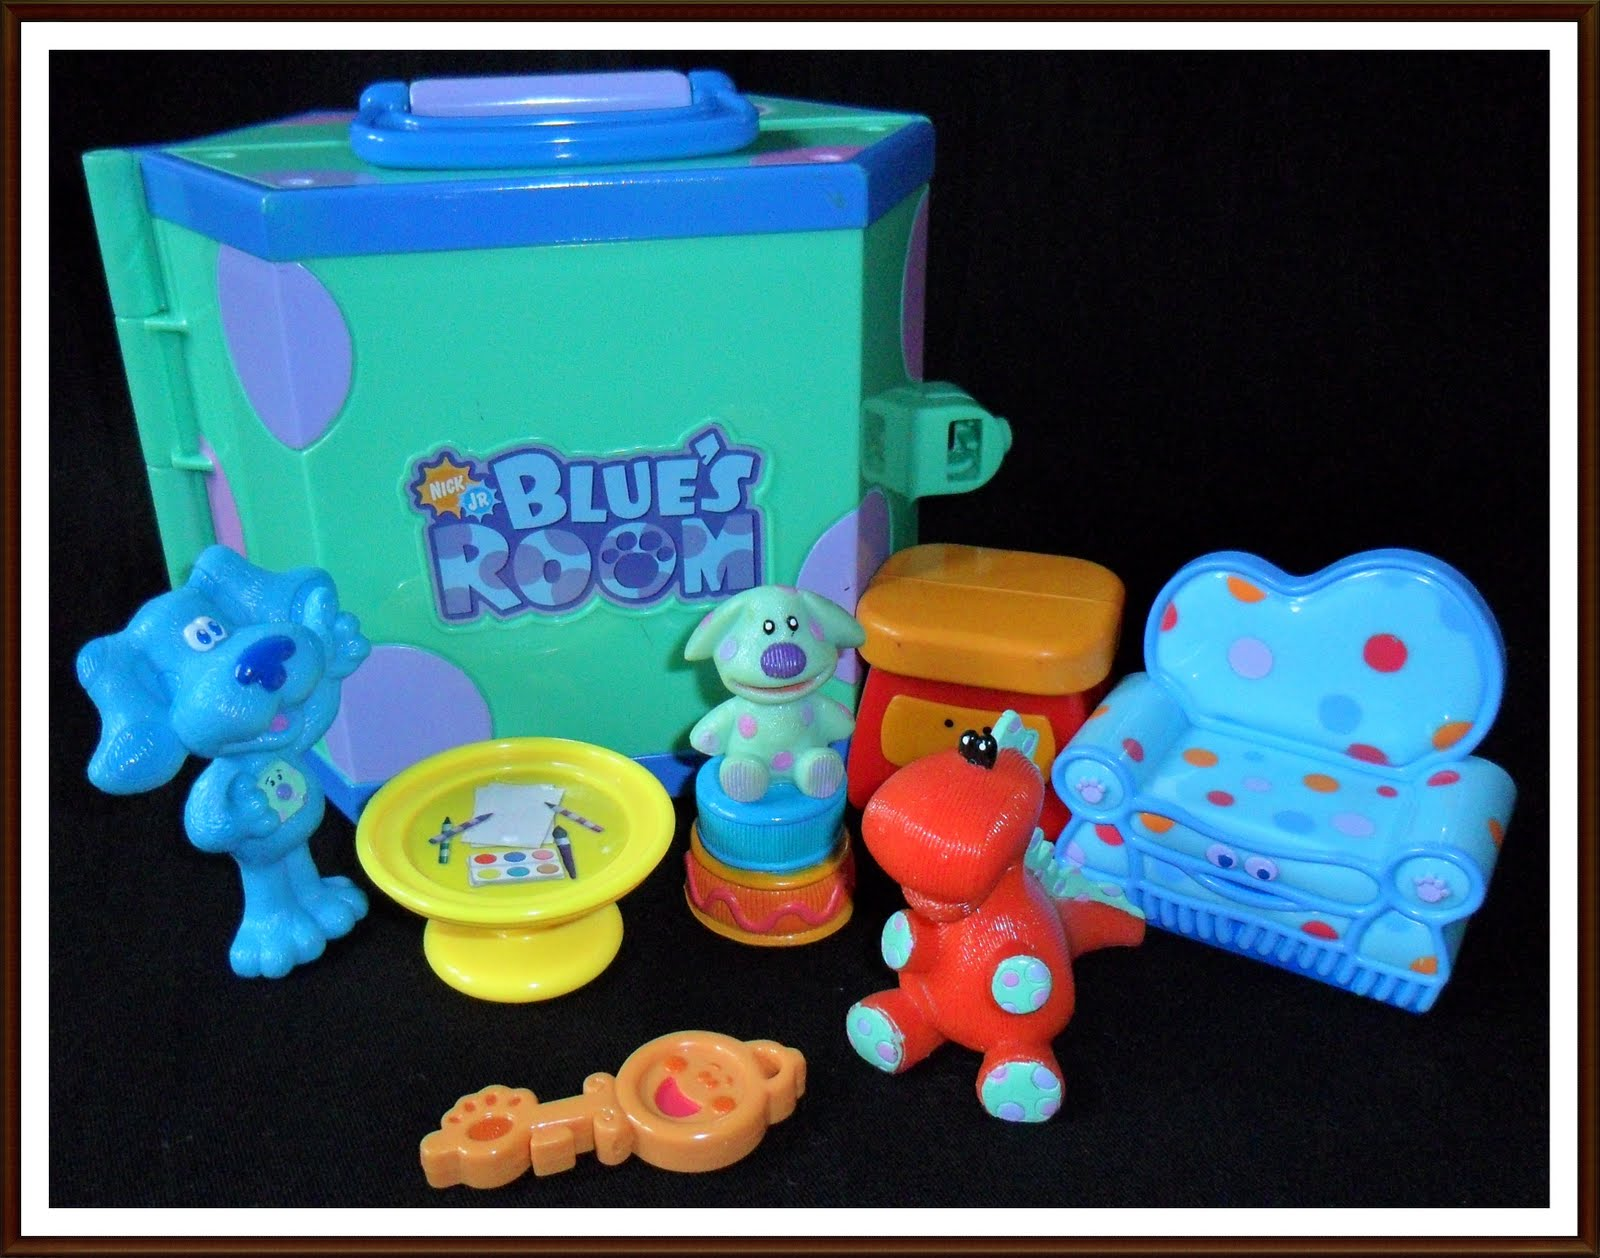 blues room toys images reverse search